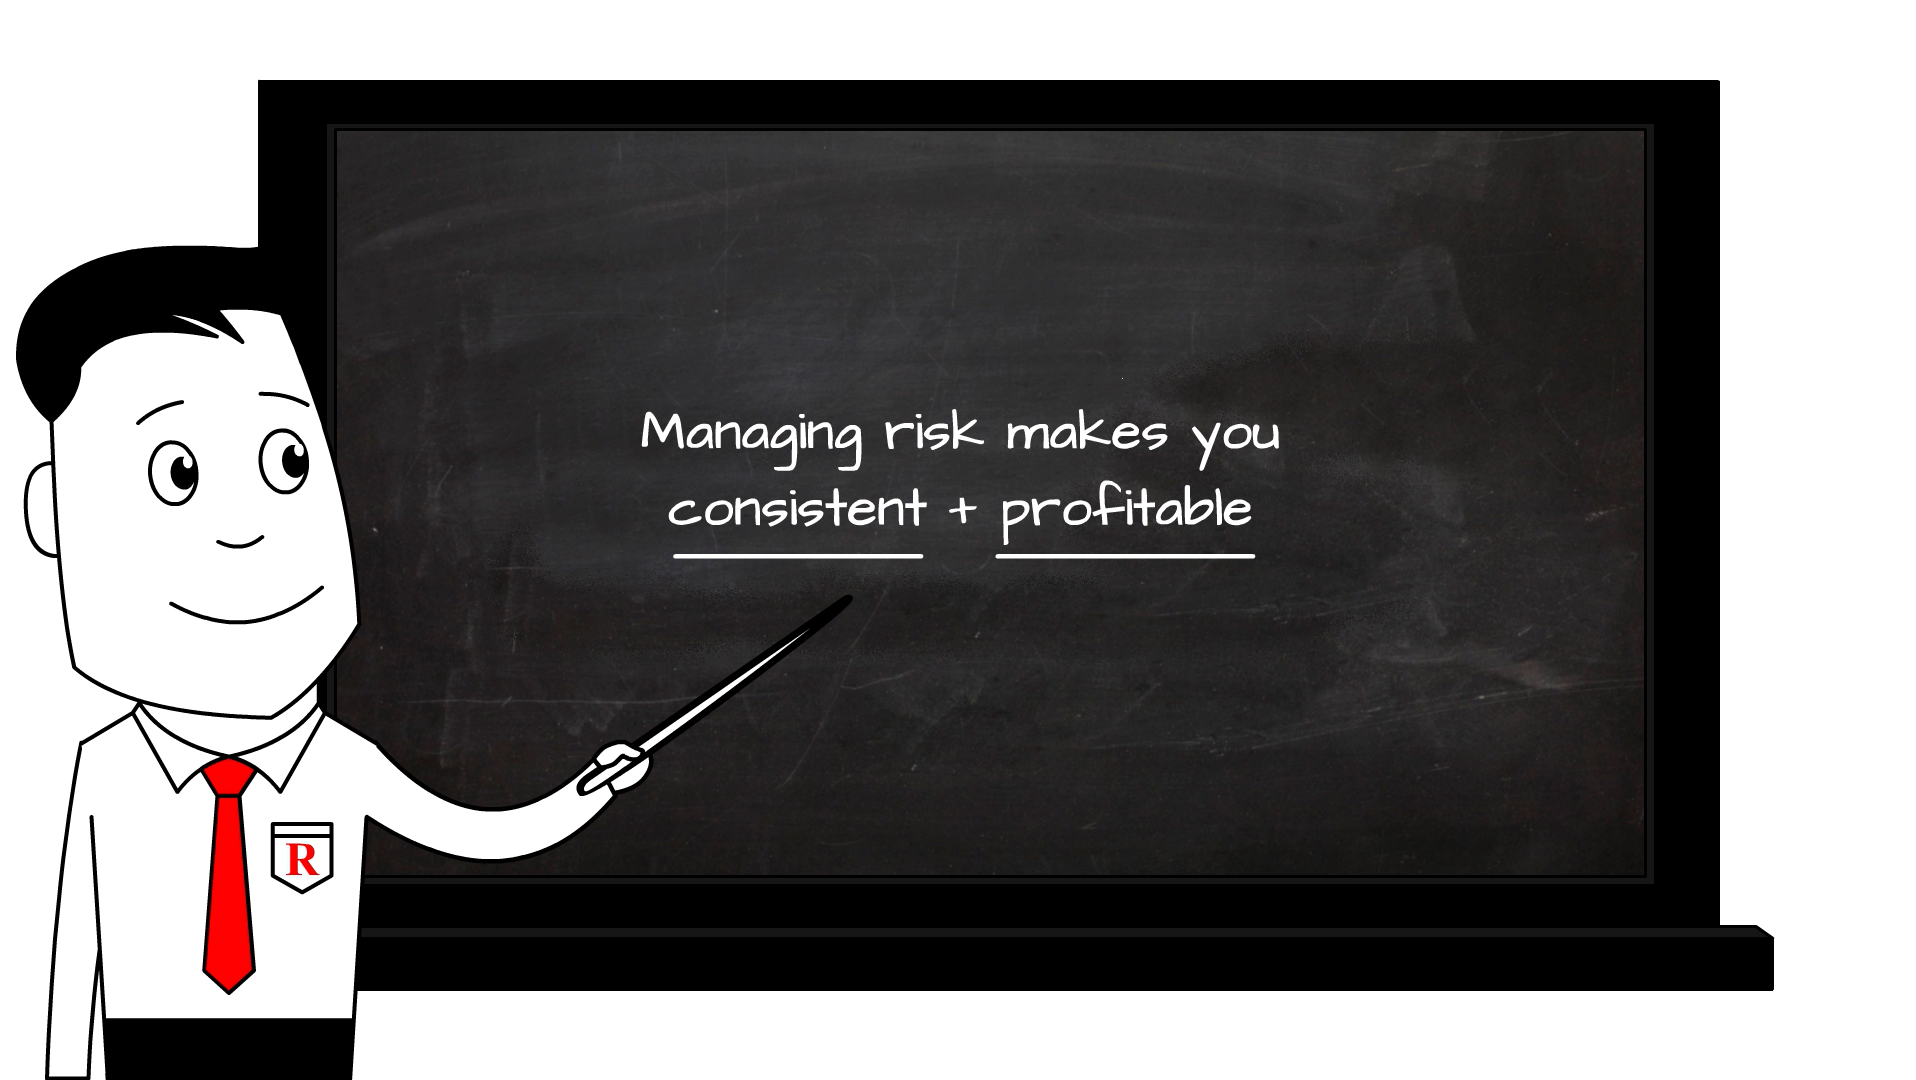 Why is risk important?